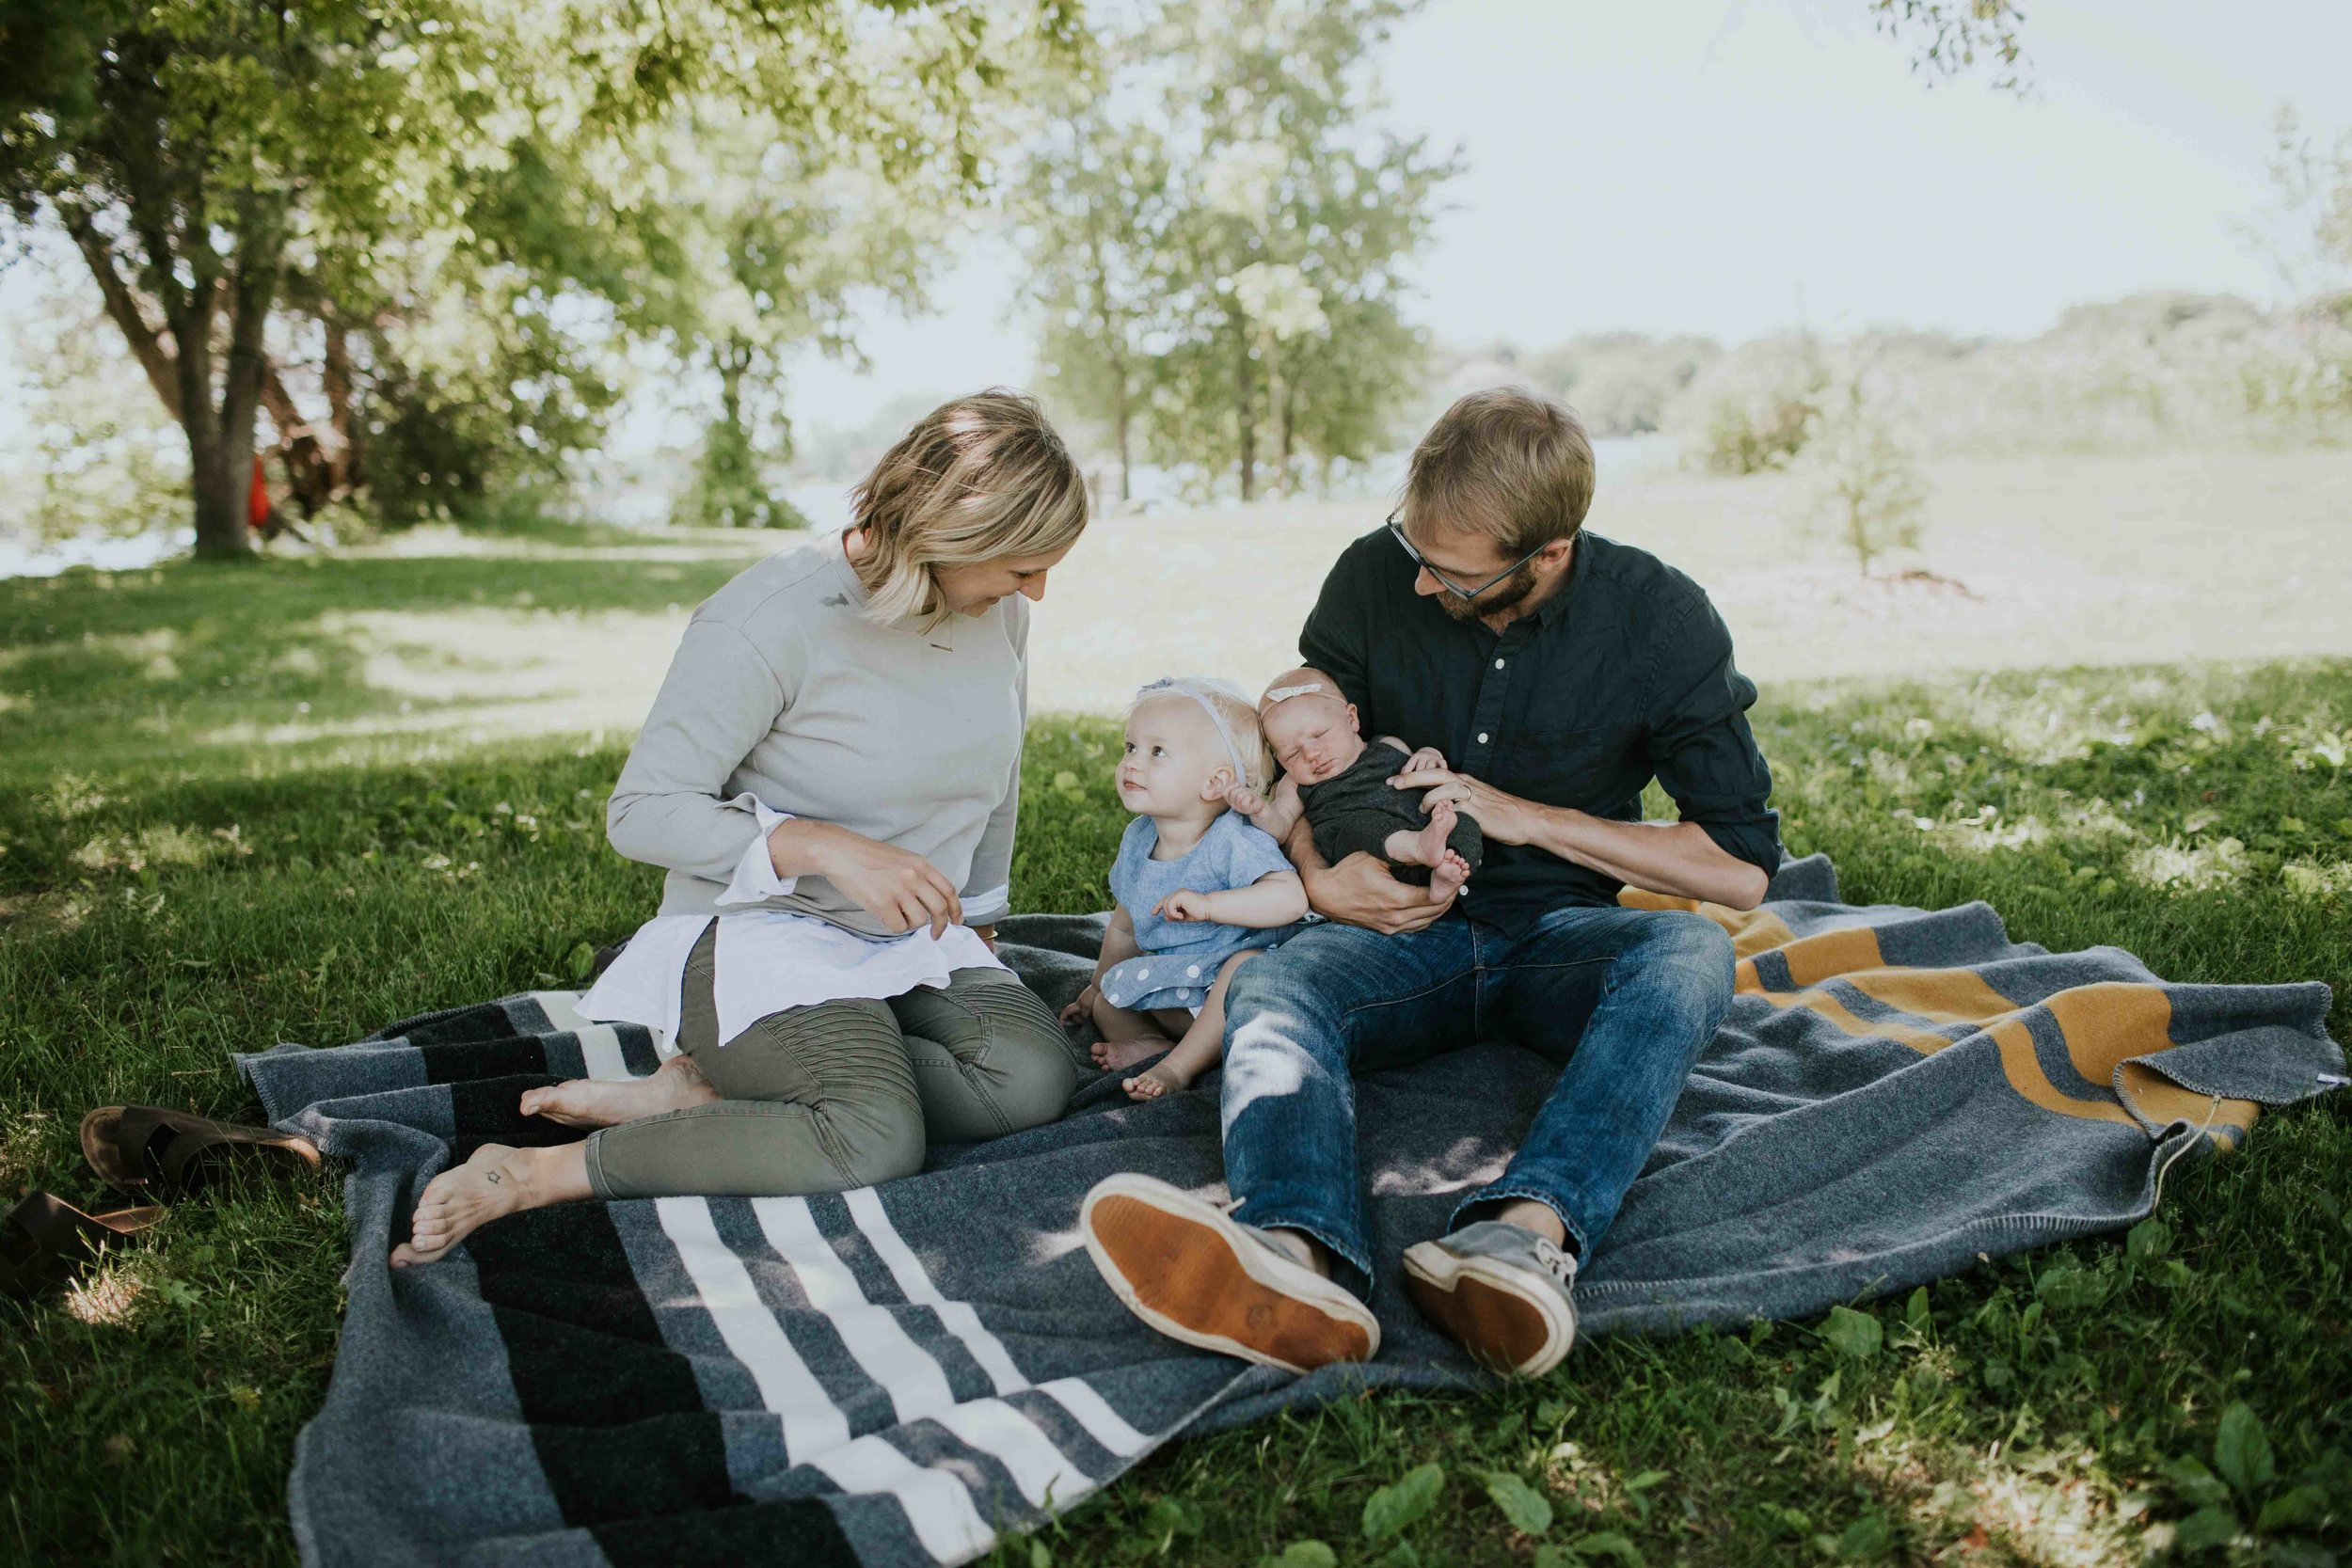 newborn family lifestyle photographer minneapolis st paul minnesota